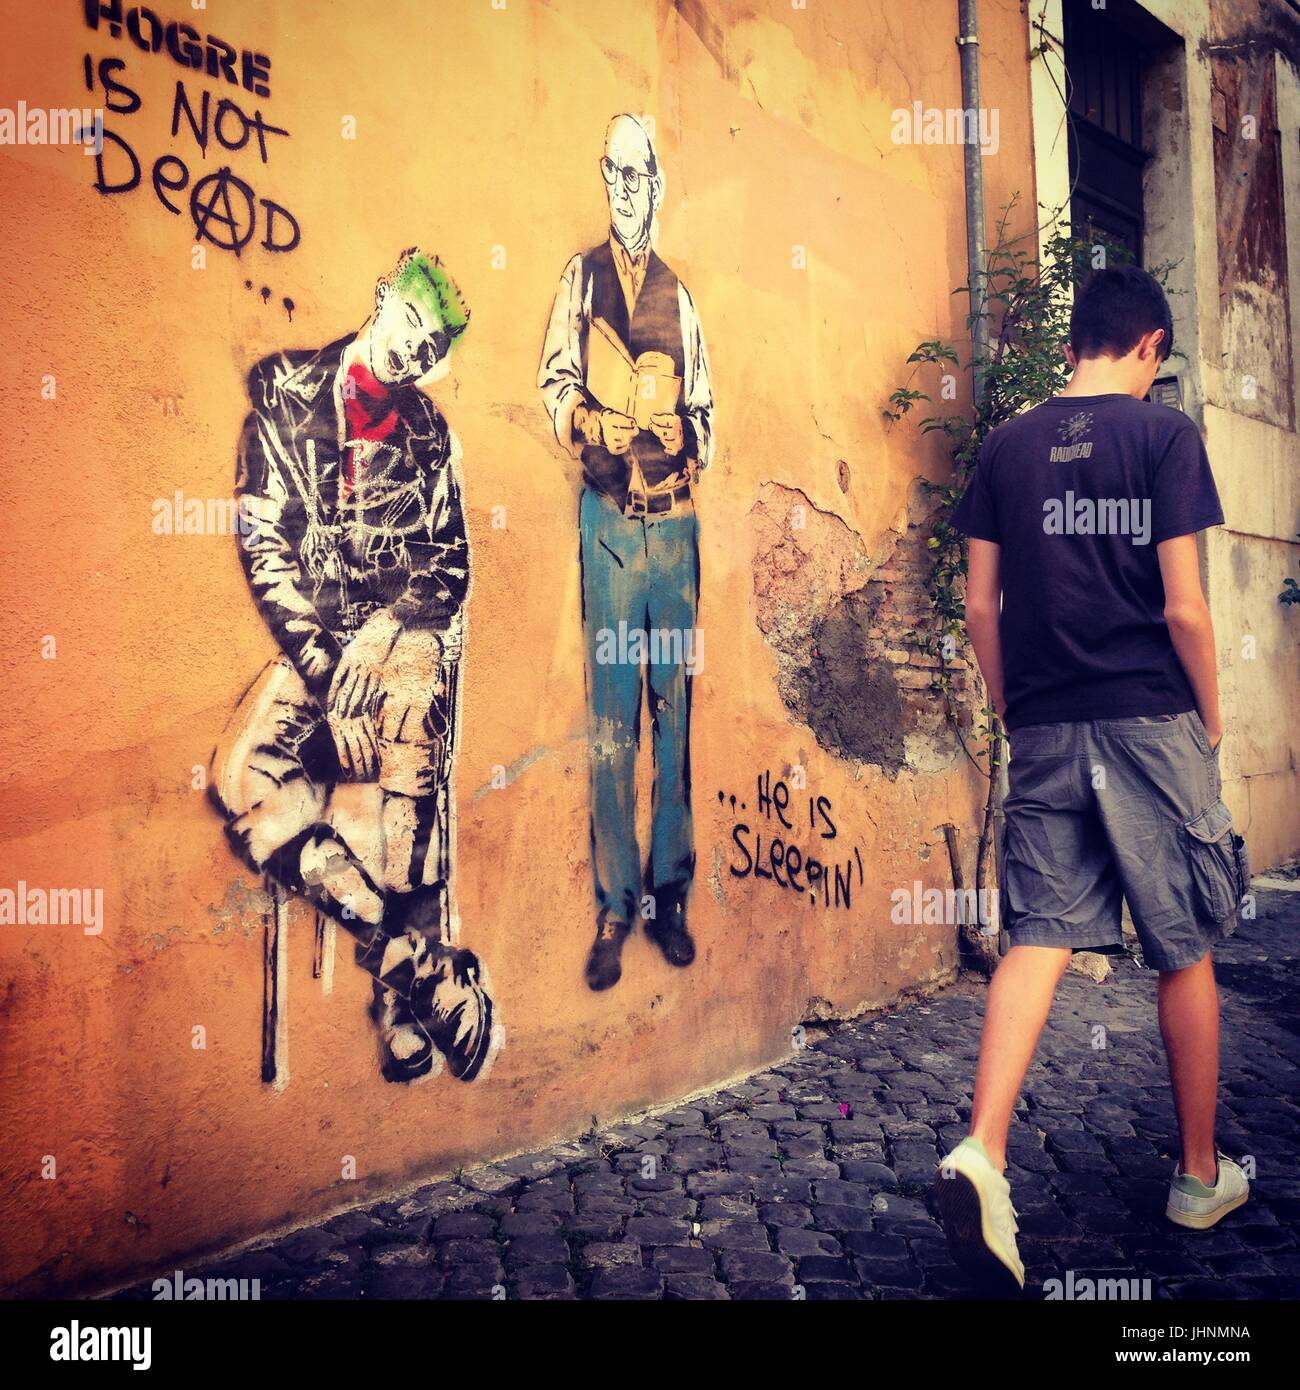 ' Hogre is not dead ' by Hogre, Via dei fienaroli , Trastevere, Rome, Italy    Credit © Anna Retico/Sintesi/Alamy - Stock Image